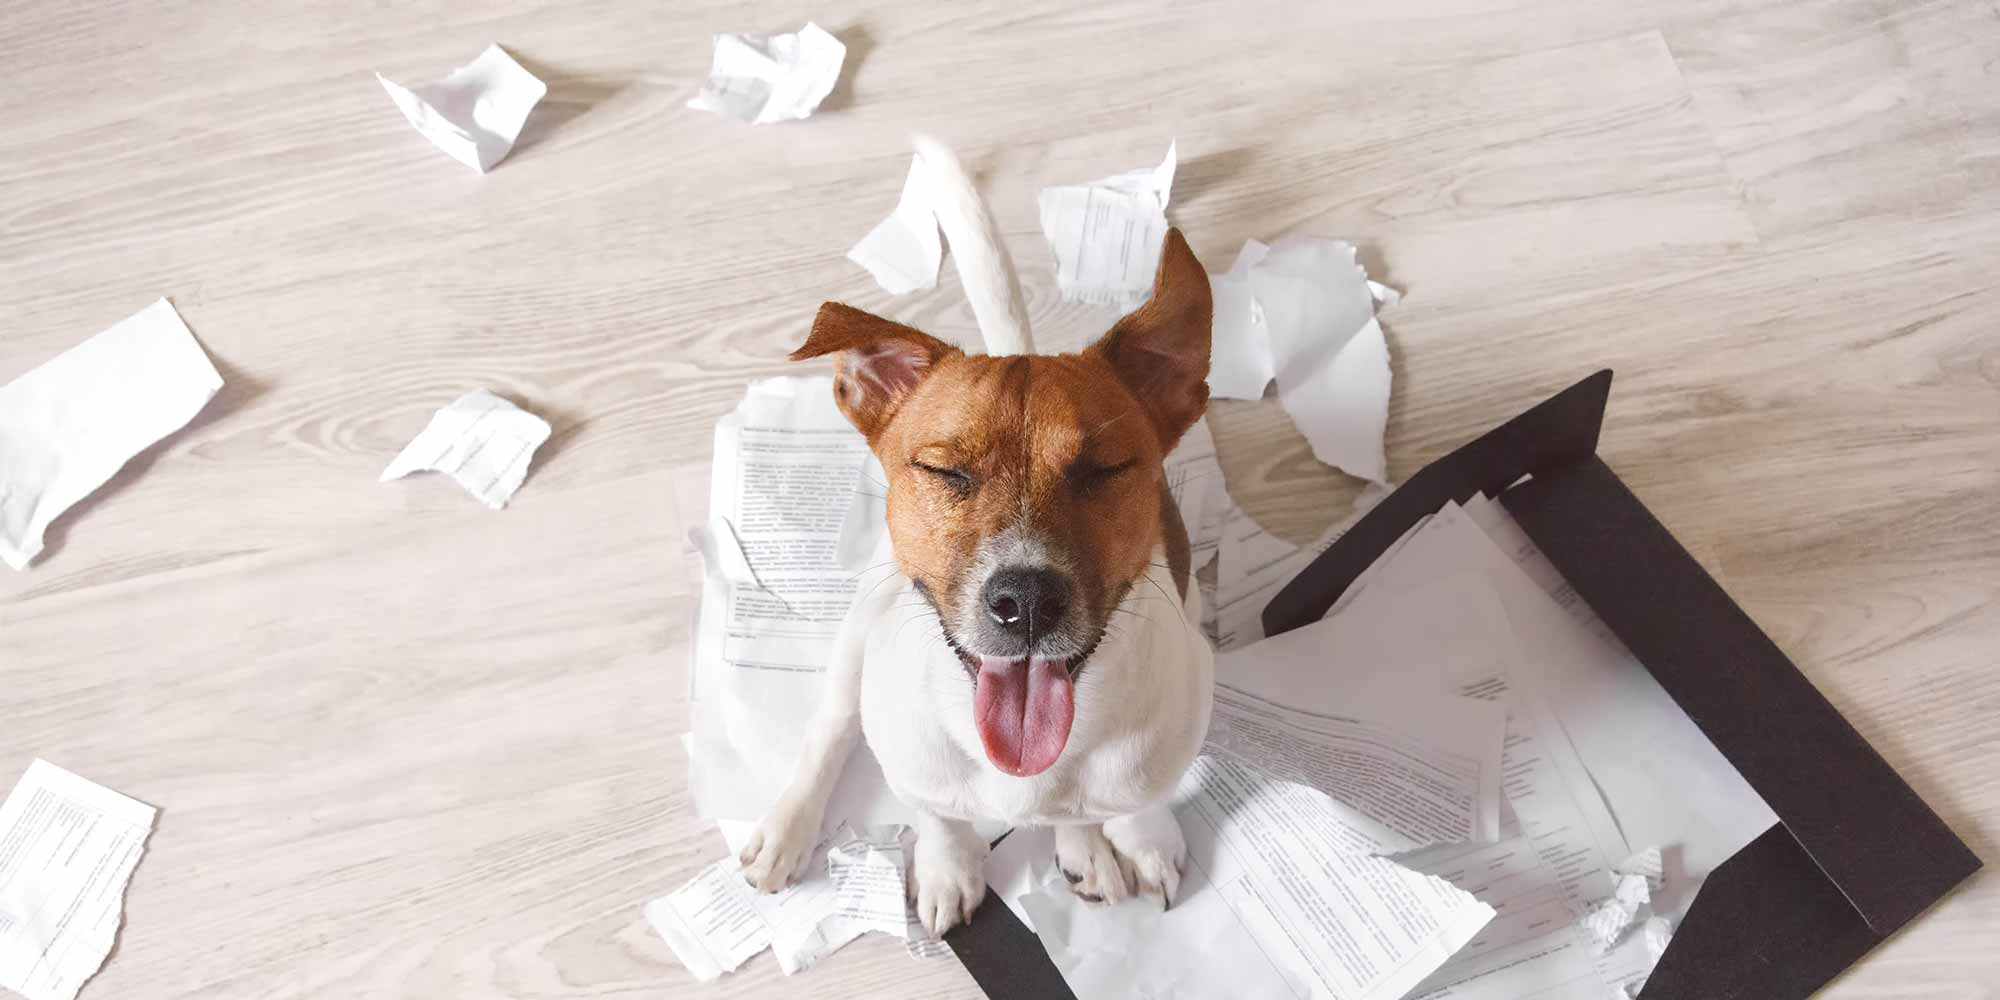 Happy dog chewed up papers